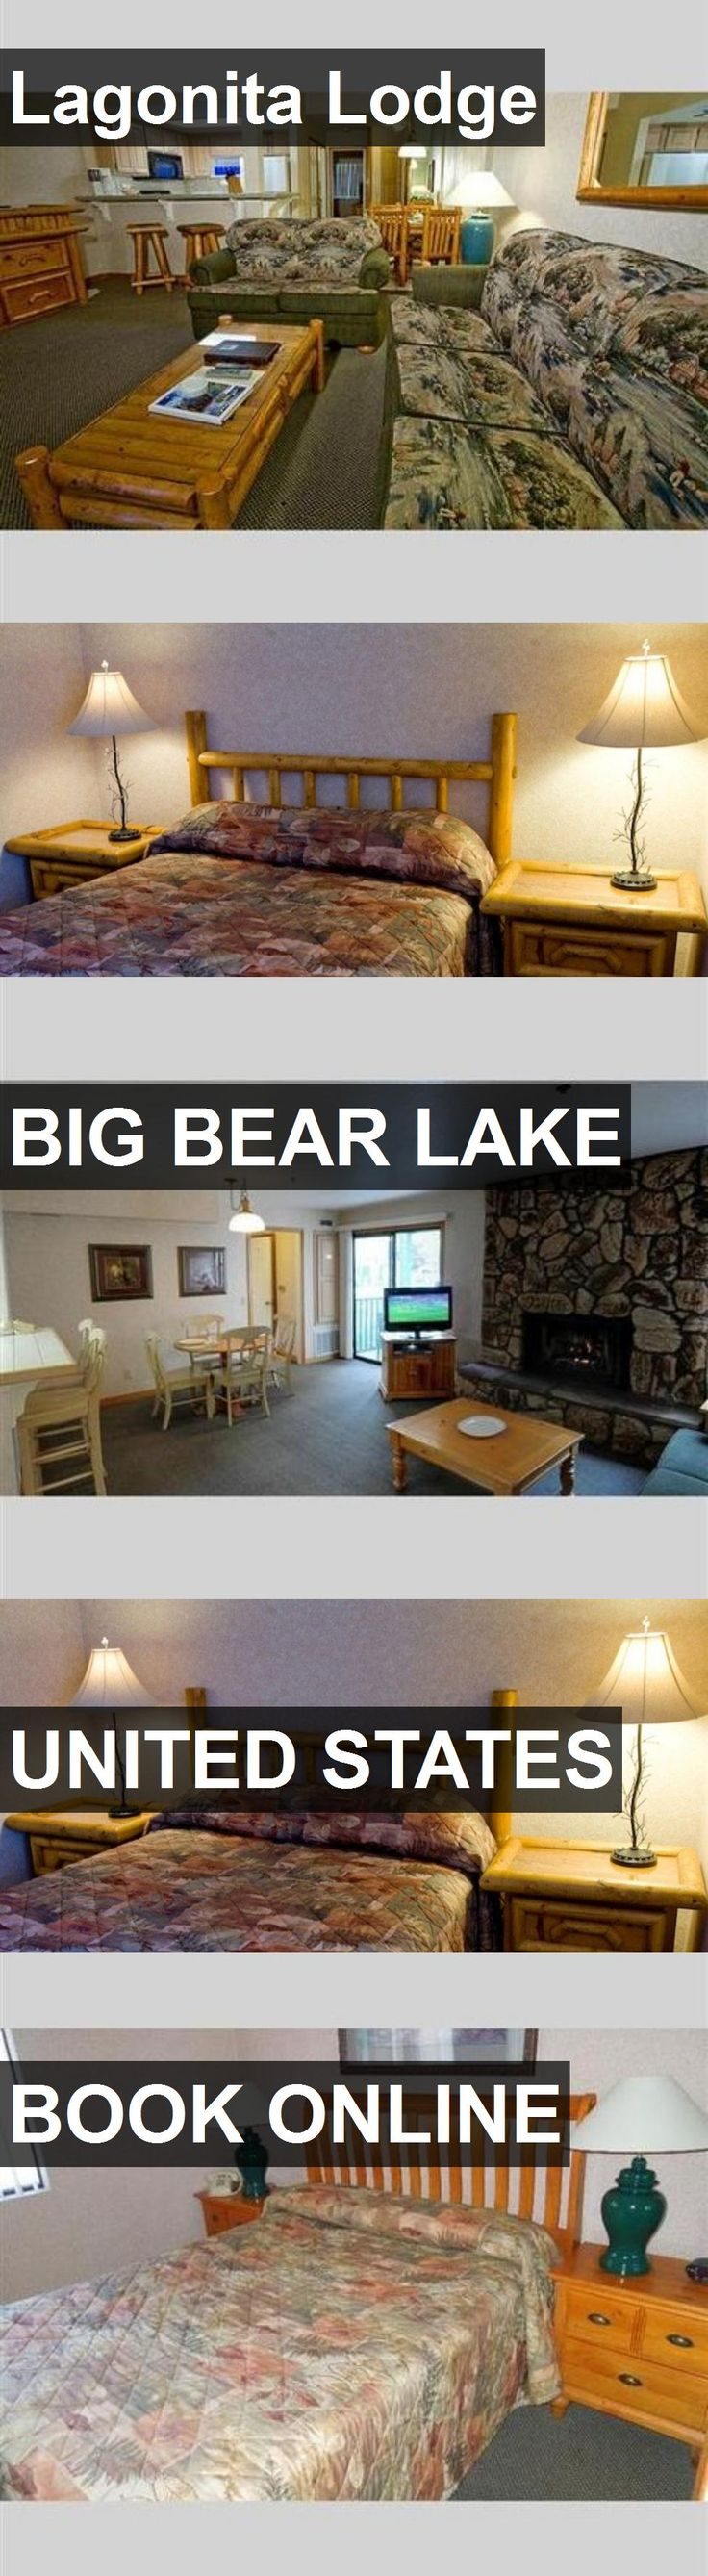 Hotel Lagonita Lodge in Big Bear Lake, United States. For more information, photos, reviews and best prices please follow the link. #UnitedStates #BigBearLake #travel #vacation #hotel